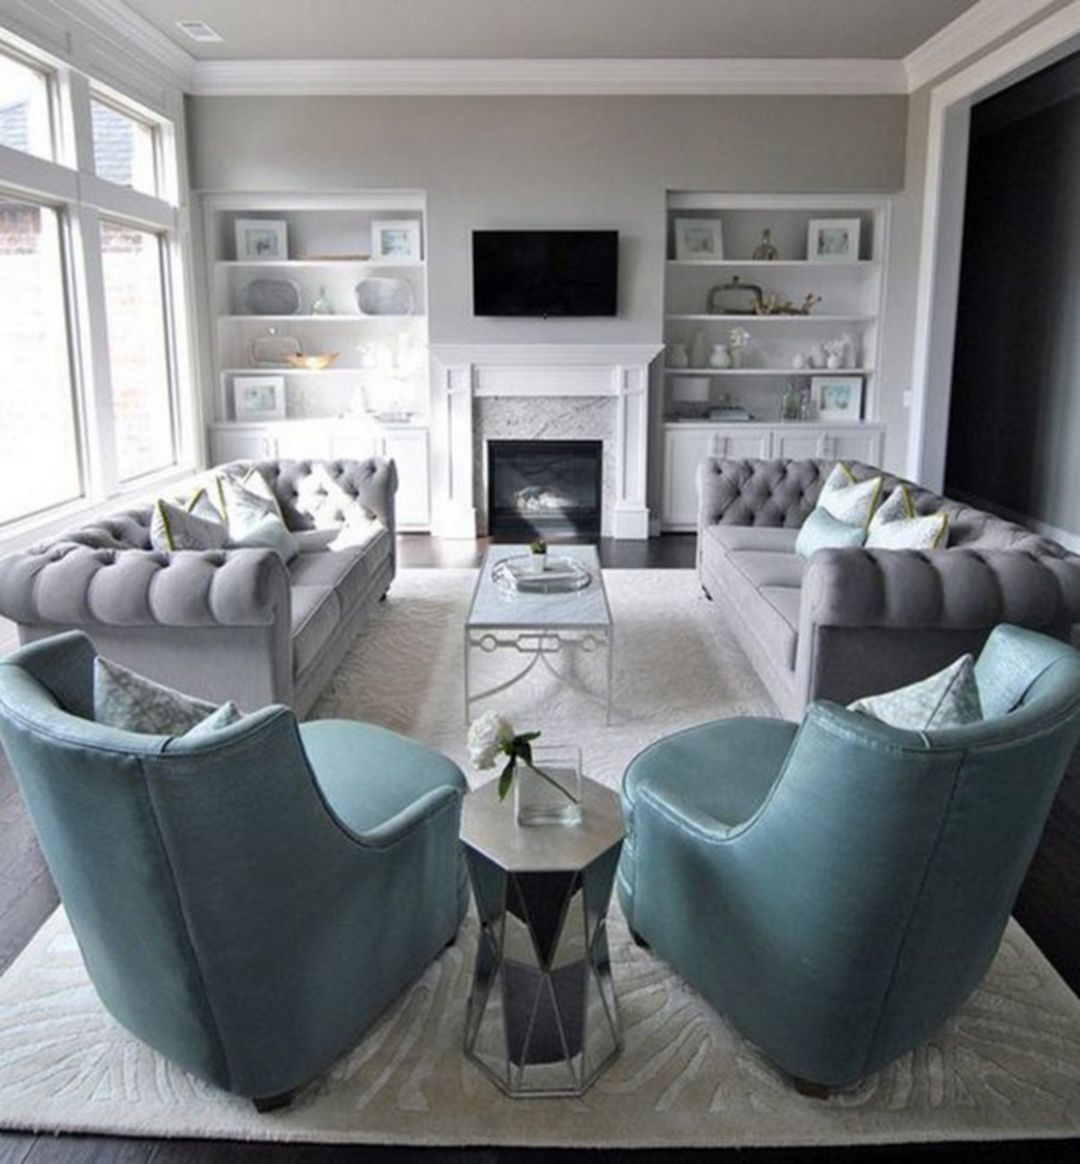 9 Awesome Living Room Design Ideas: 30 Awesome Living Room Design Decor Ideas That Can Make